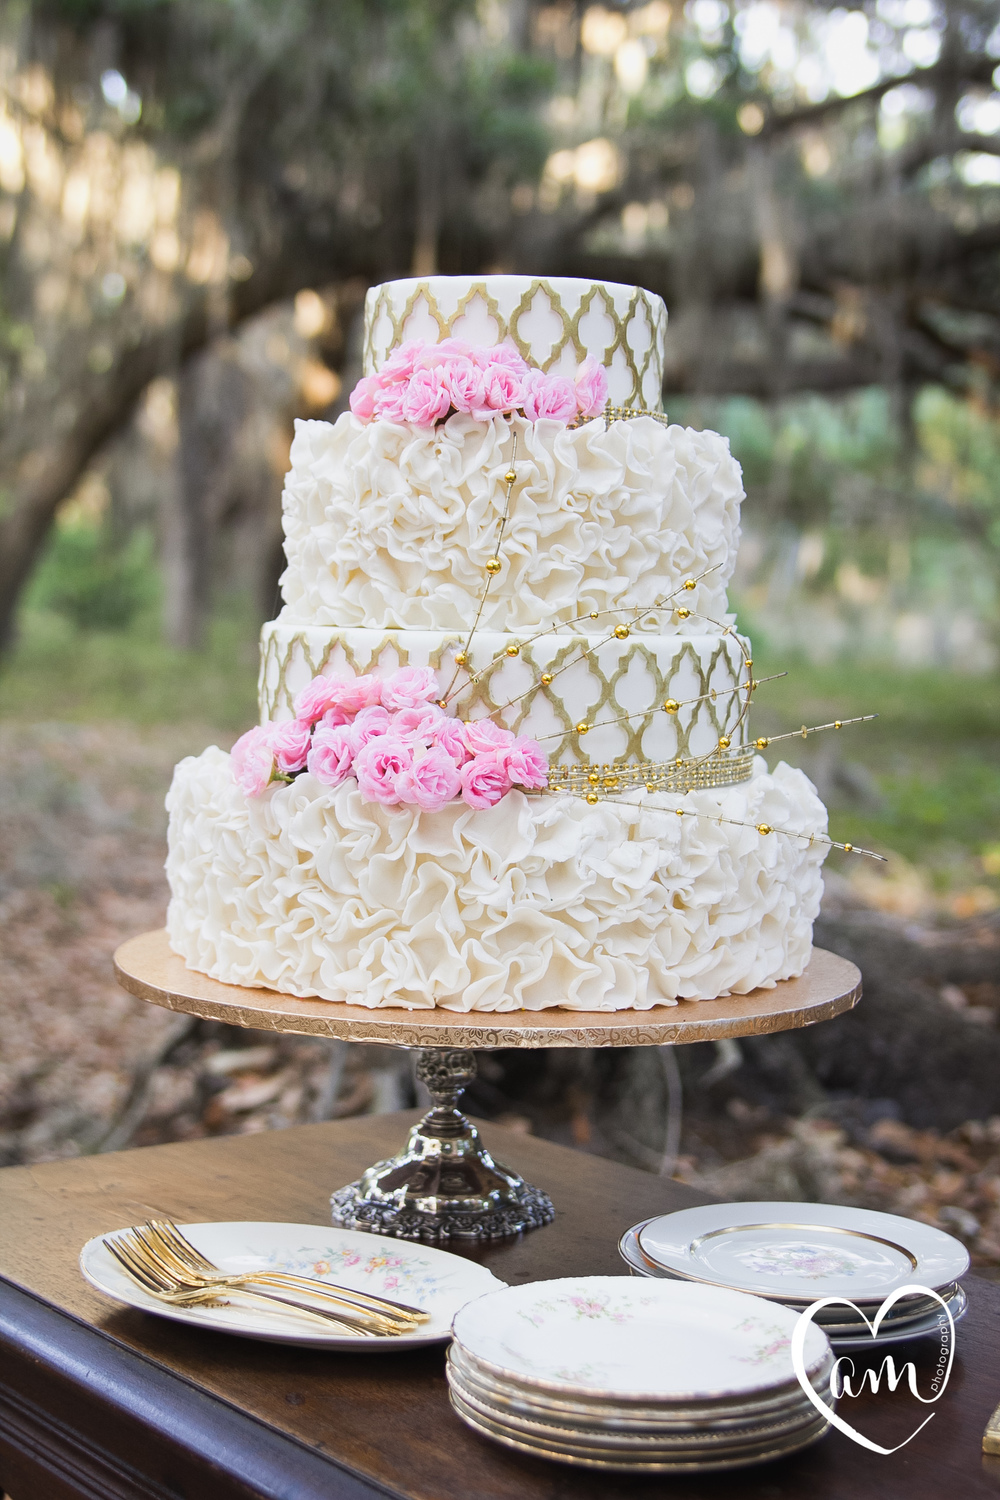 White and pink wedding cake photographed by Florida Destination Wedding Photographer